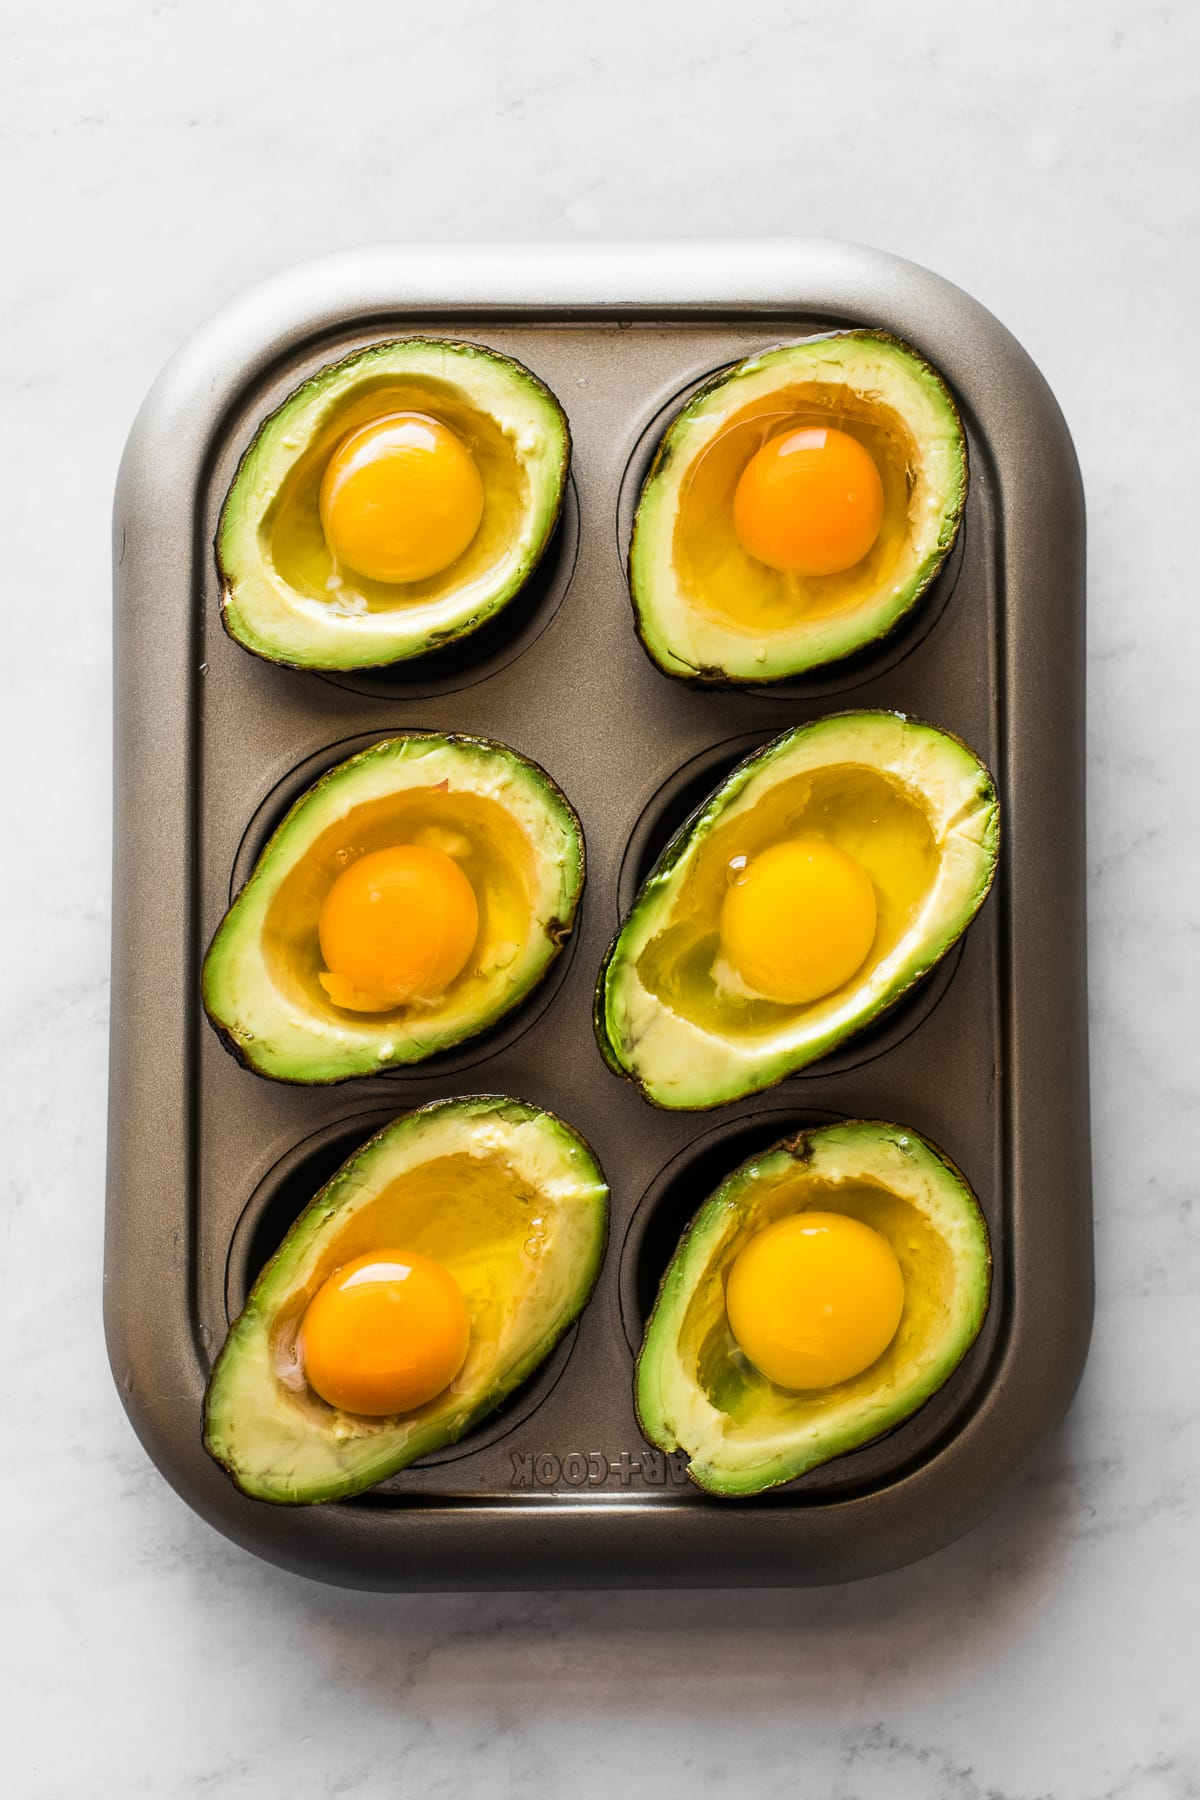 Avocado halves on a muffin tin with gently cracked eggs inside each well.